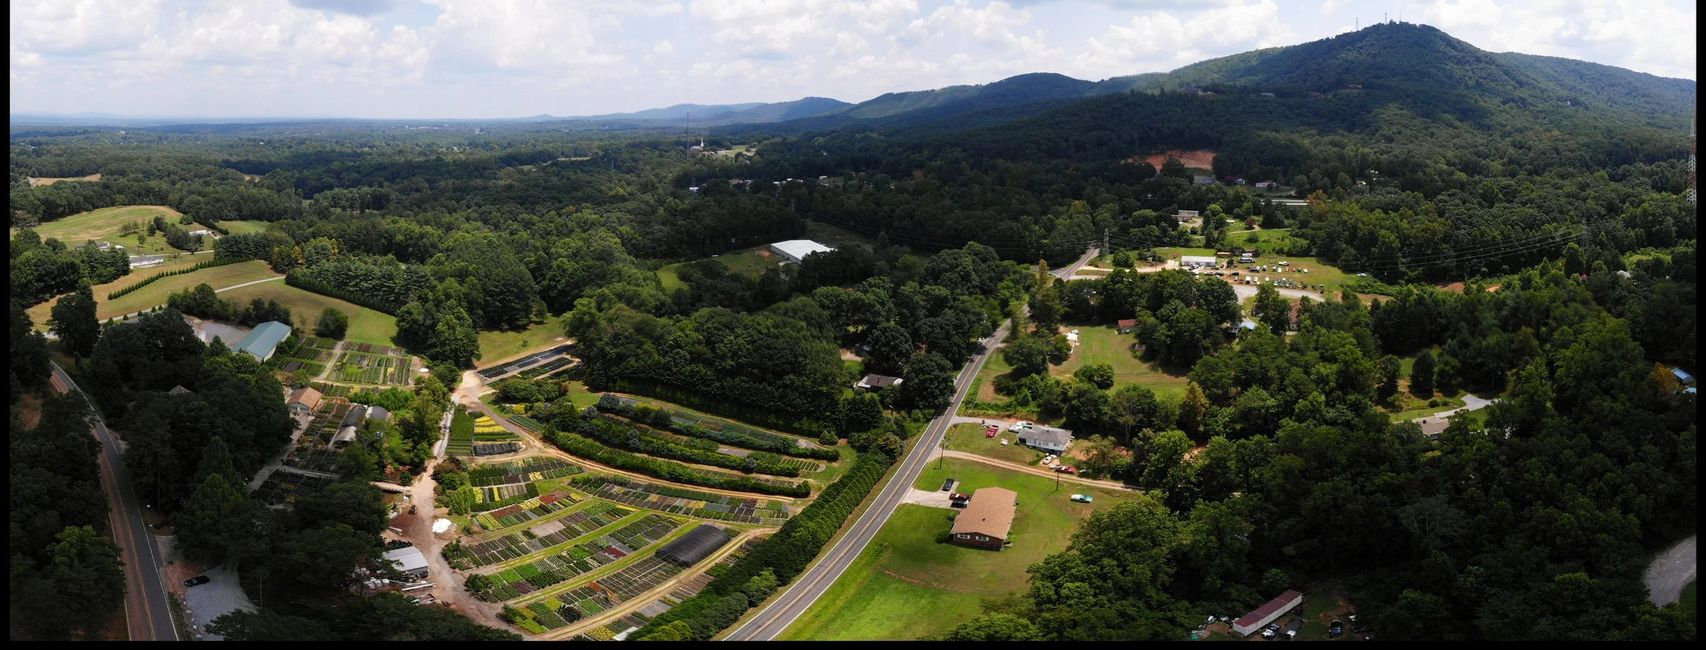 Drexel rd, Burke County, Plant Nursery, Flowers, Shrubs, Trees, Annuals, Perennials, Landscaping